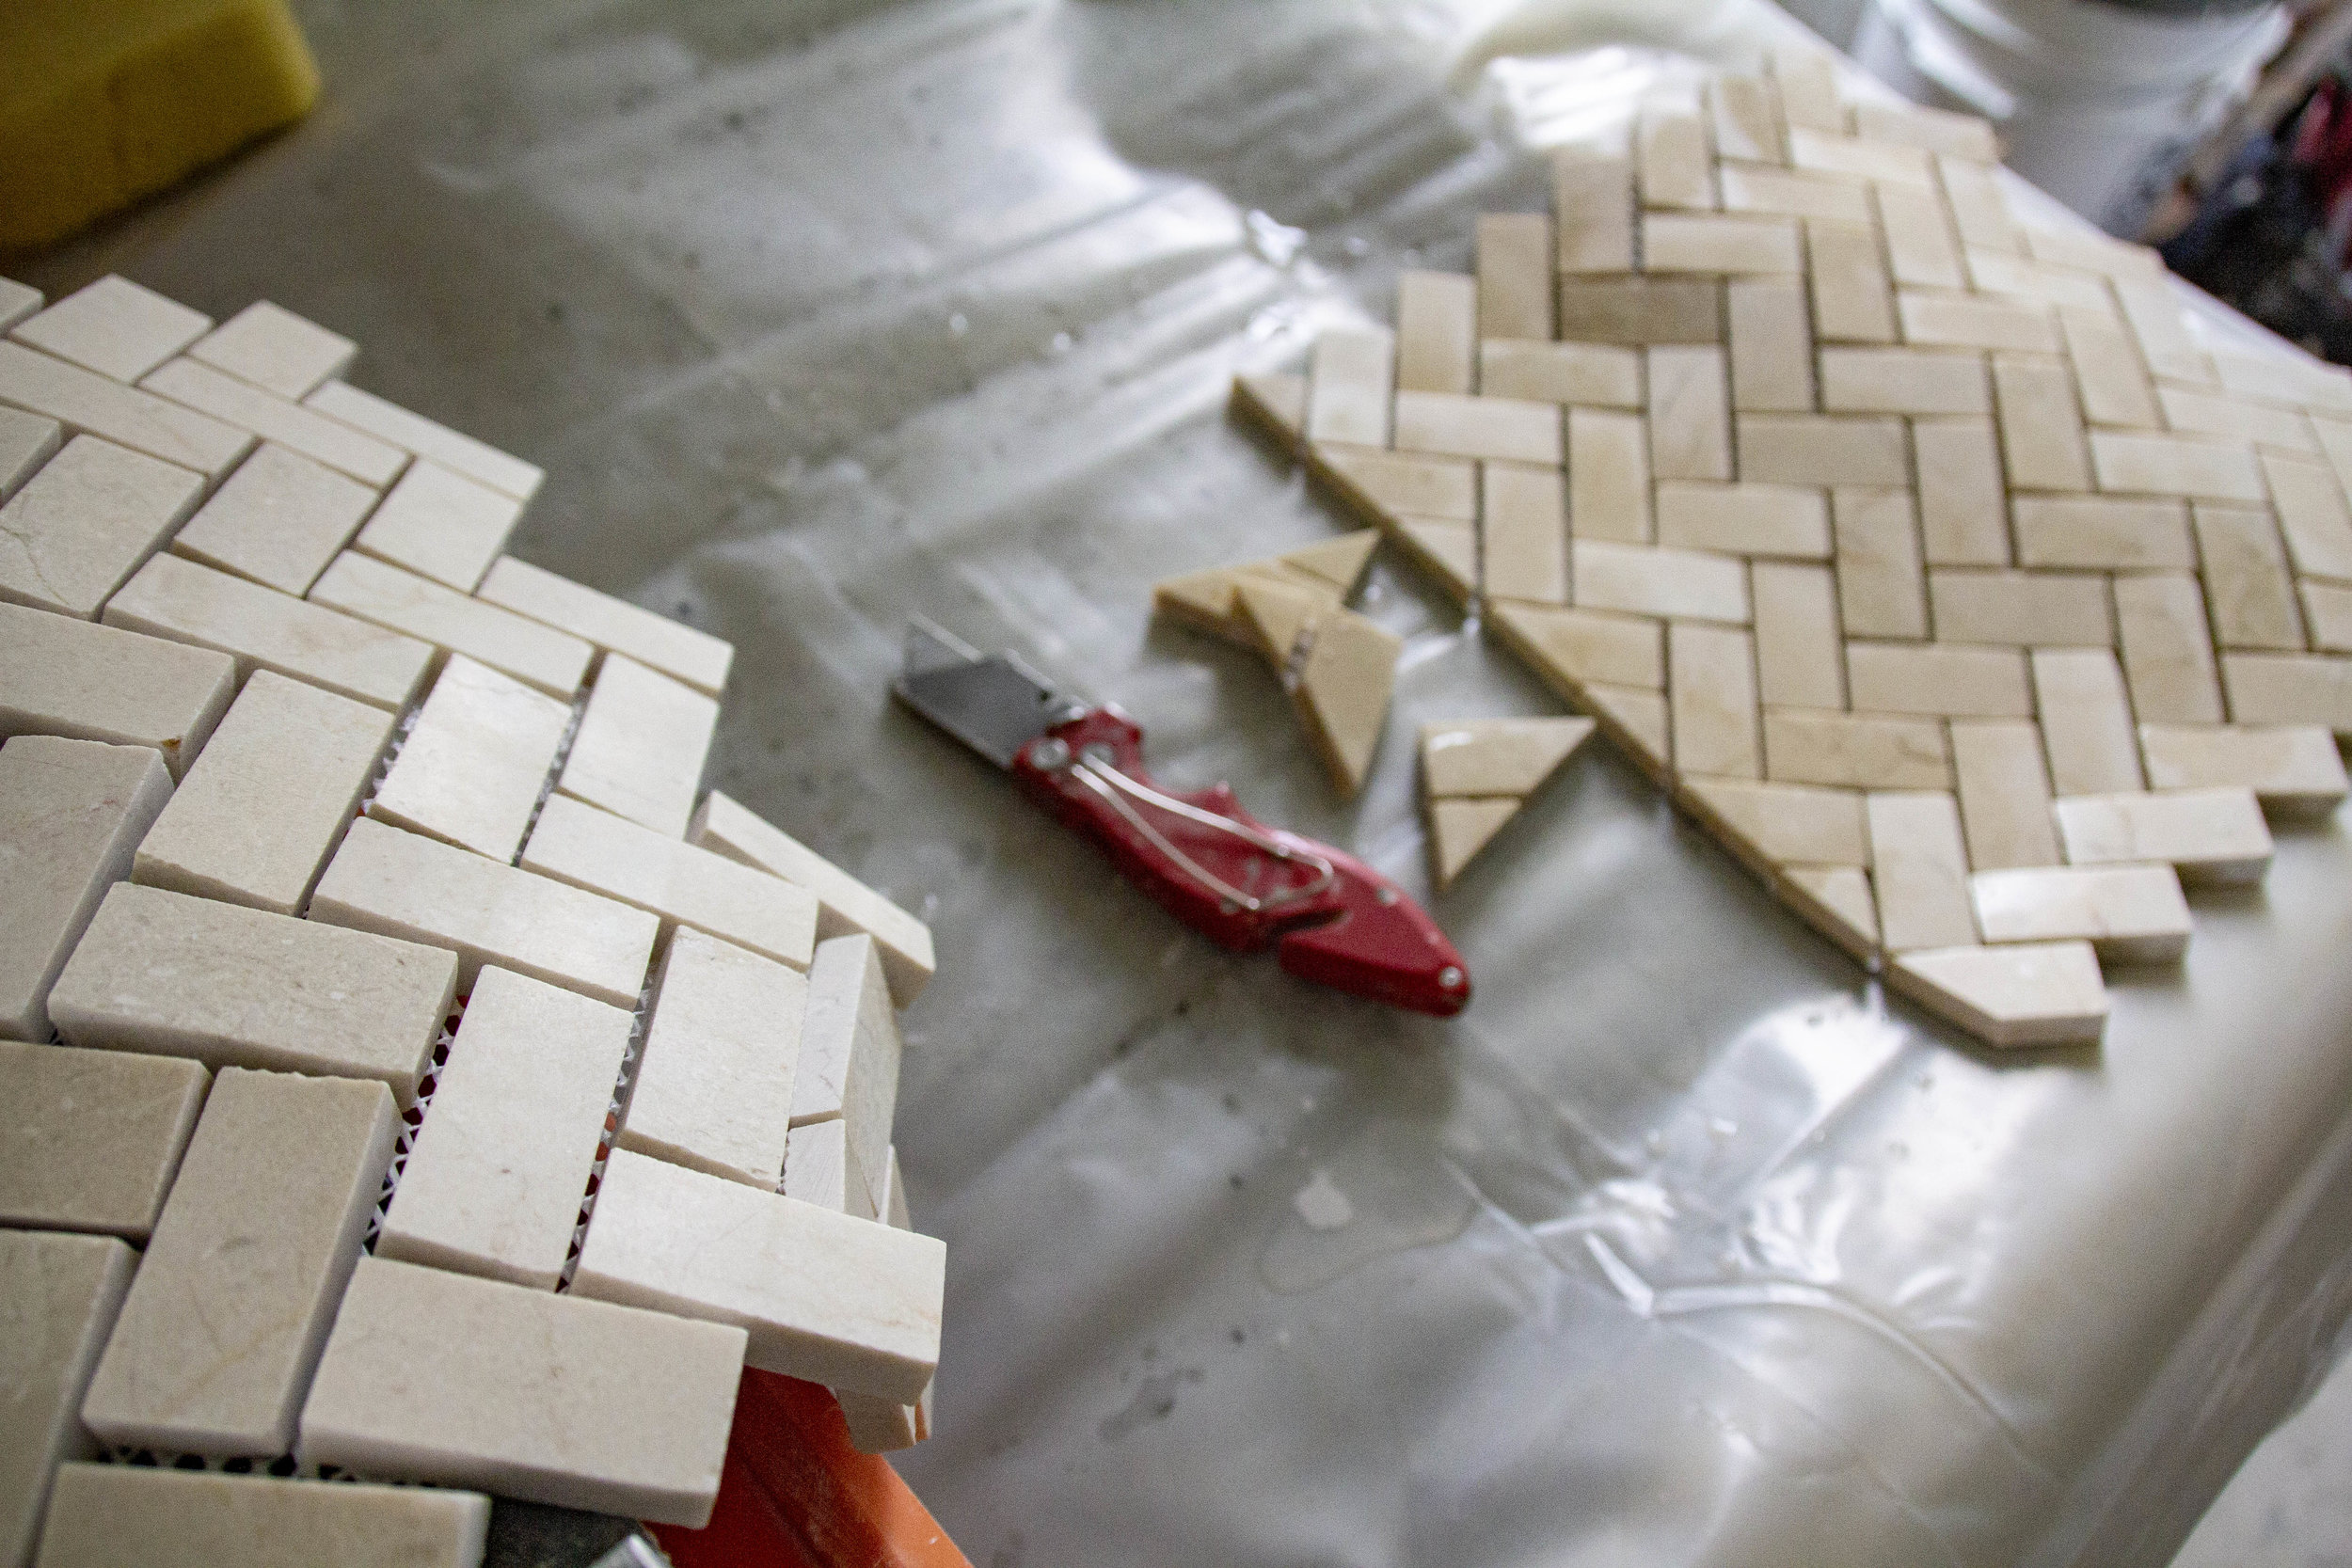 Tiles and razor knife.jpg